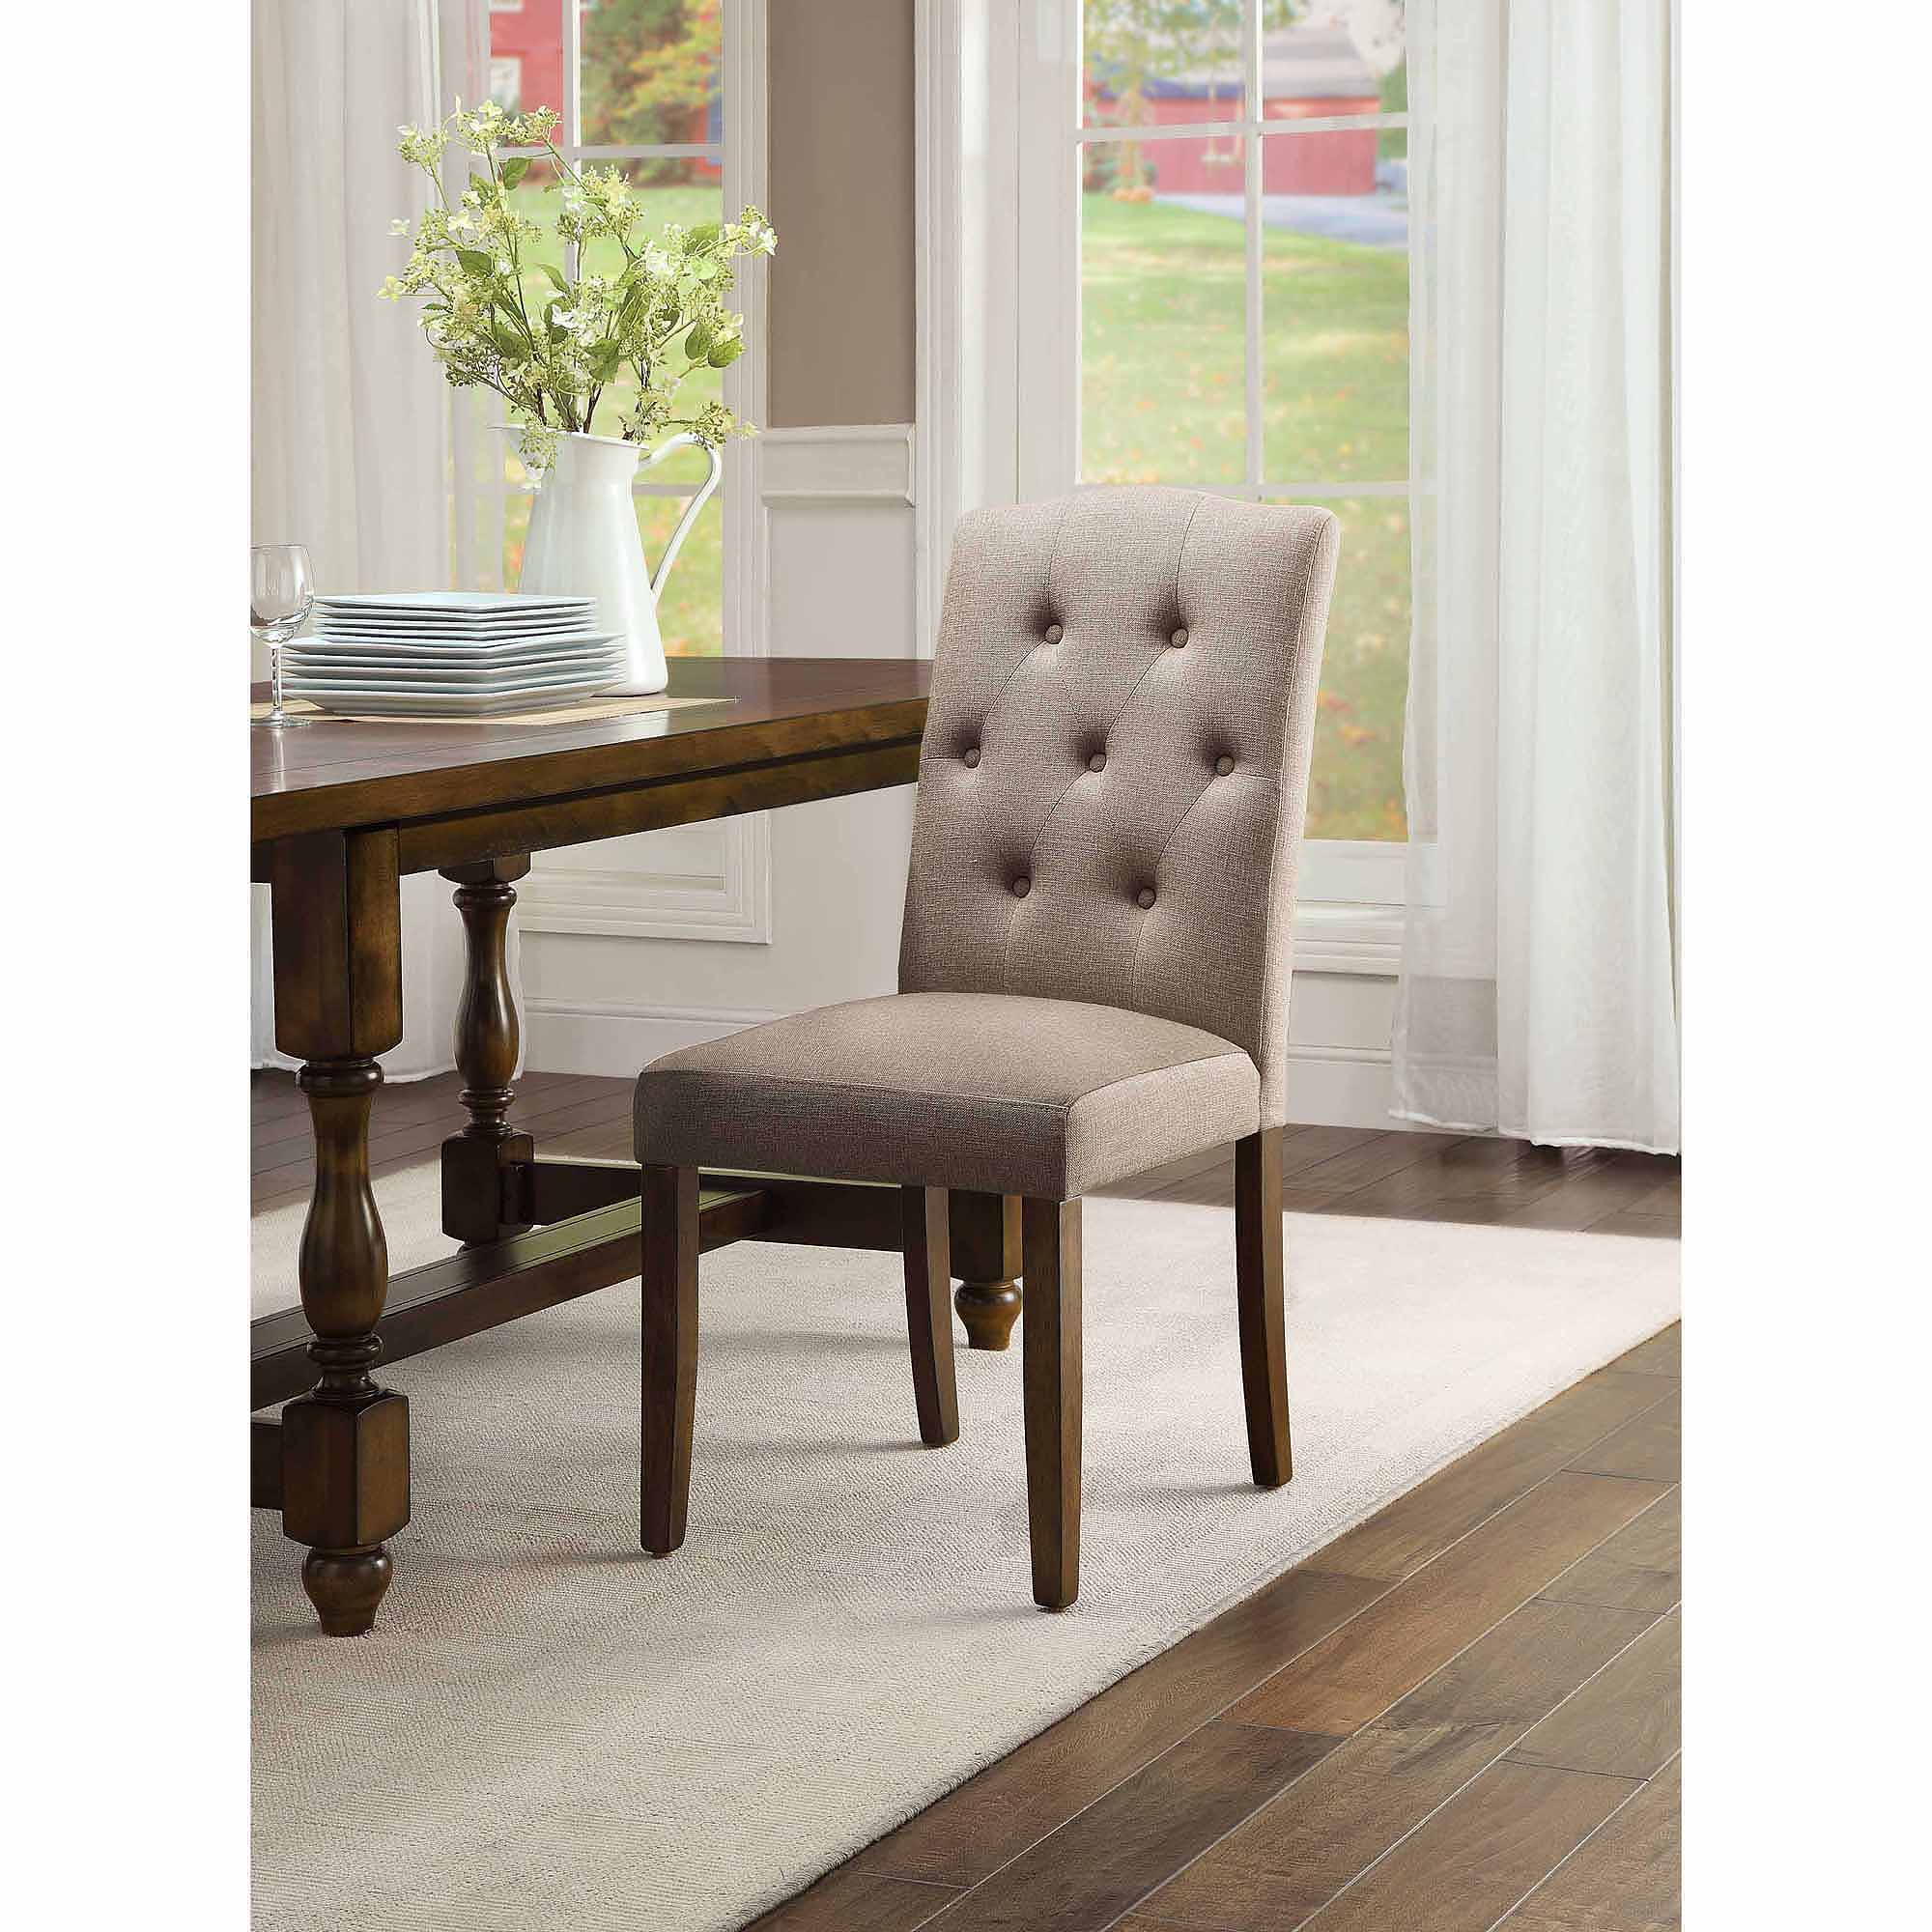 Better Homes and Gardens Providence Chair, Beige